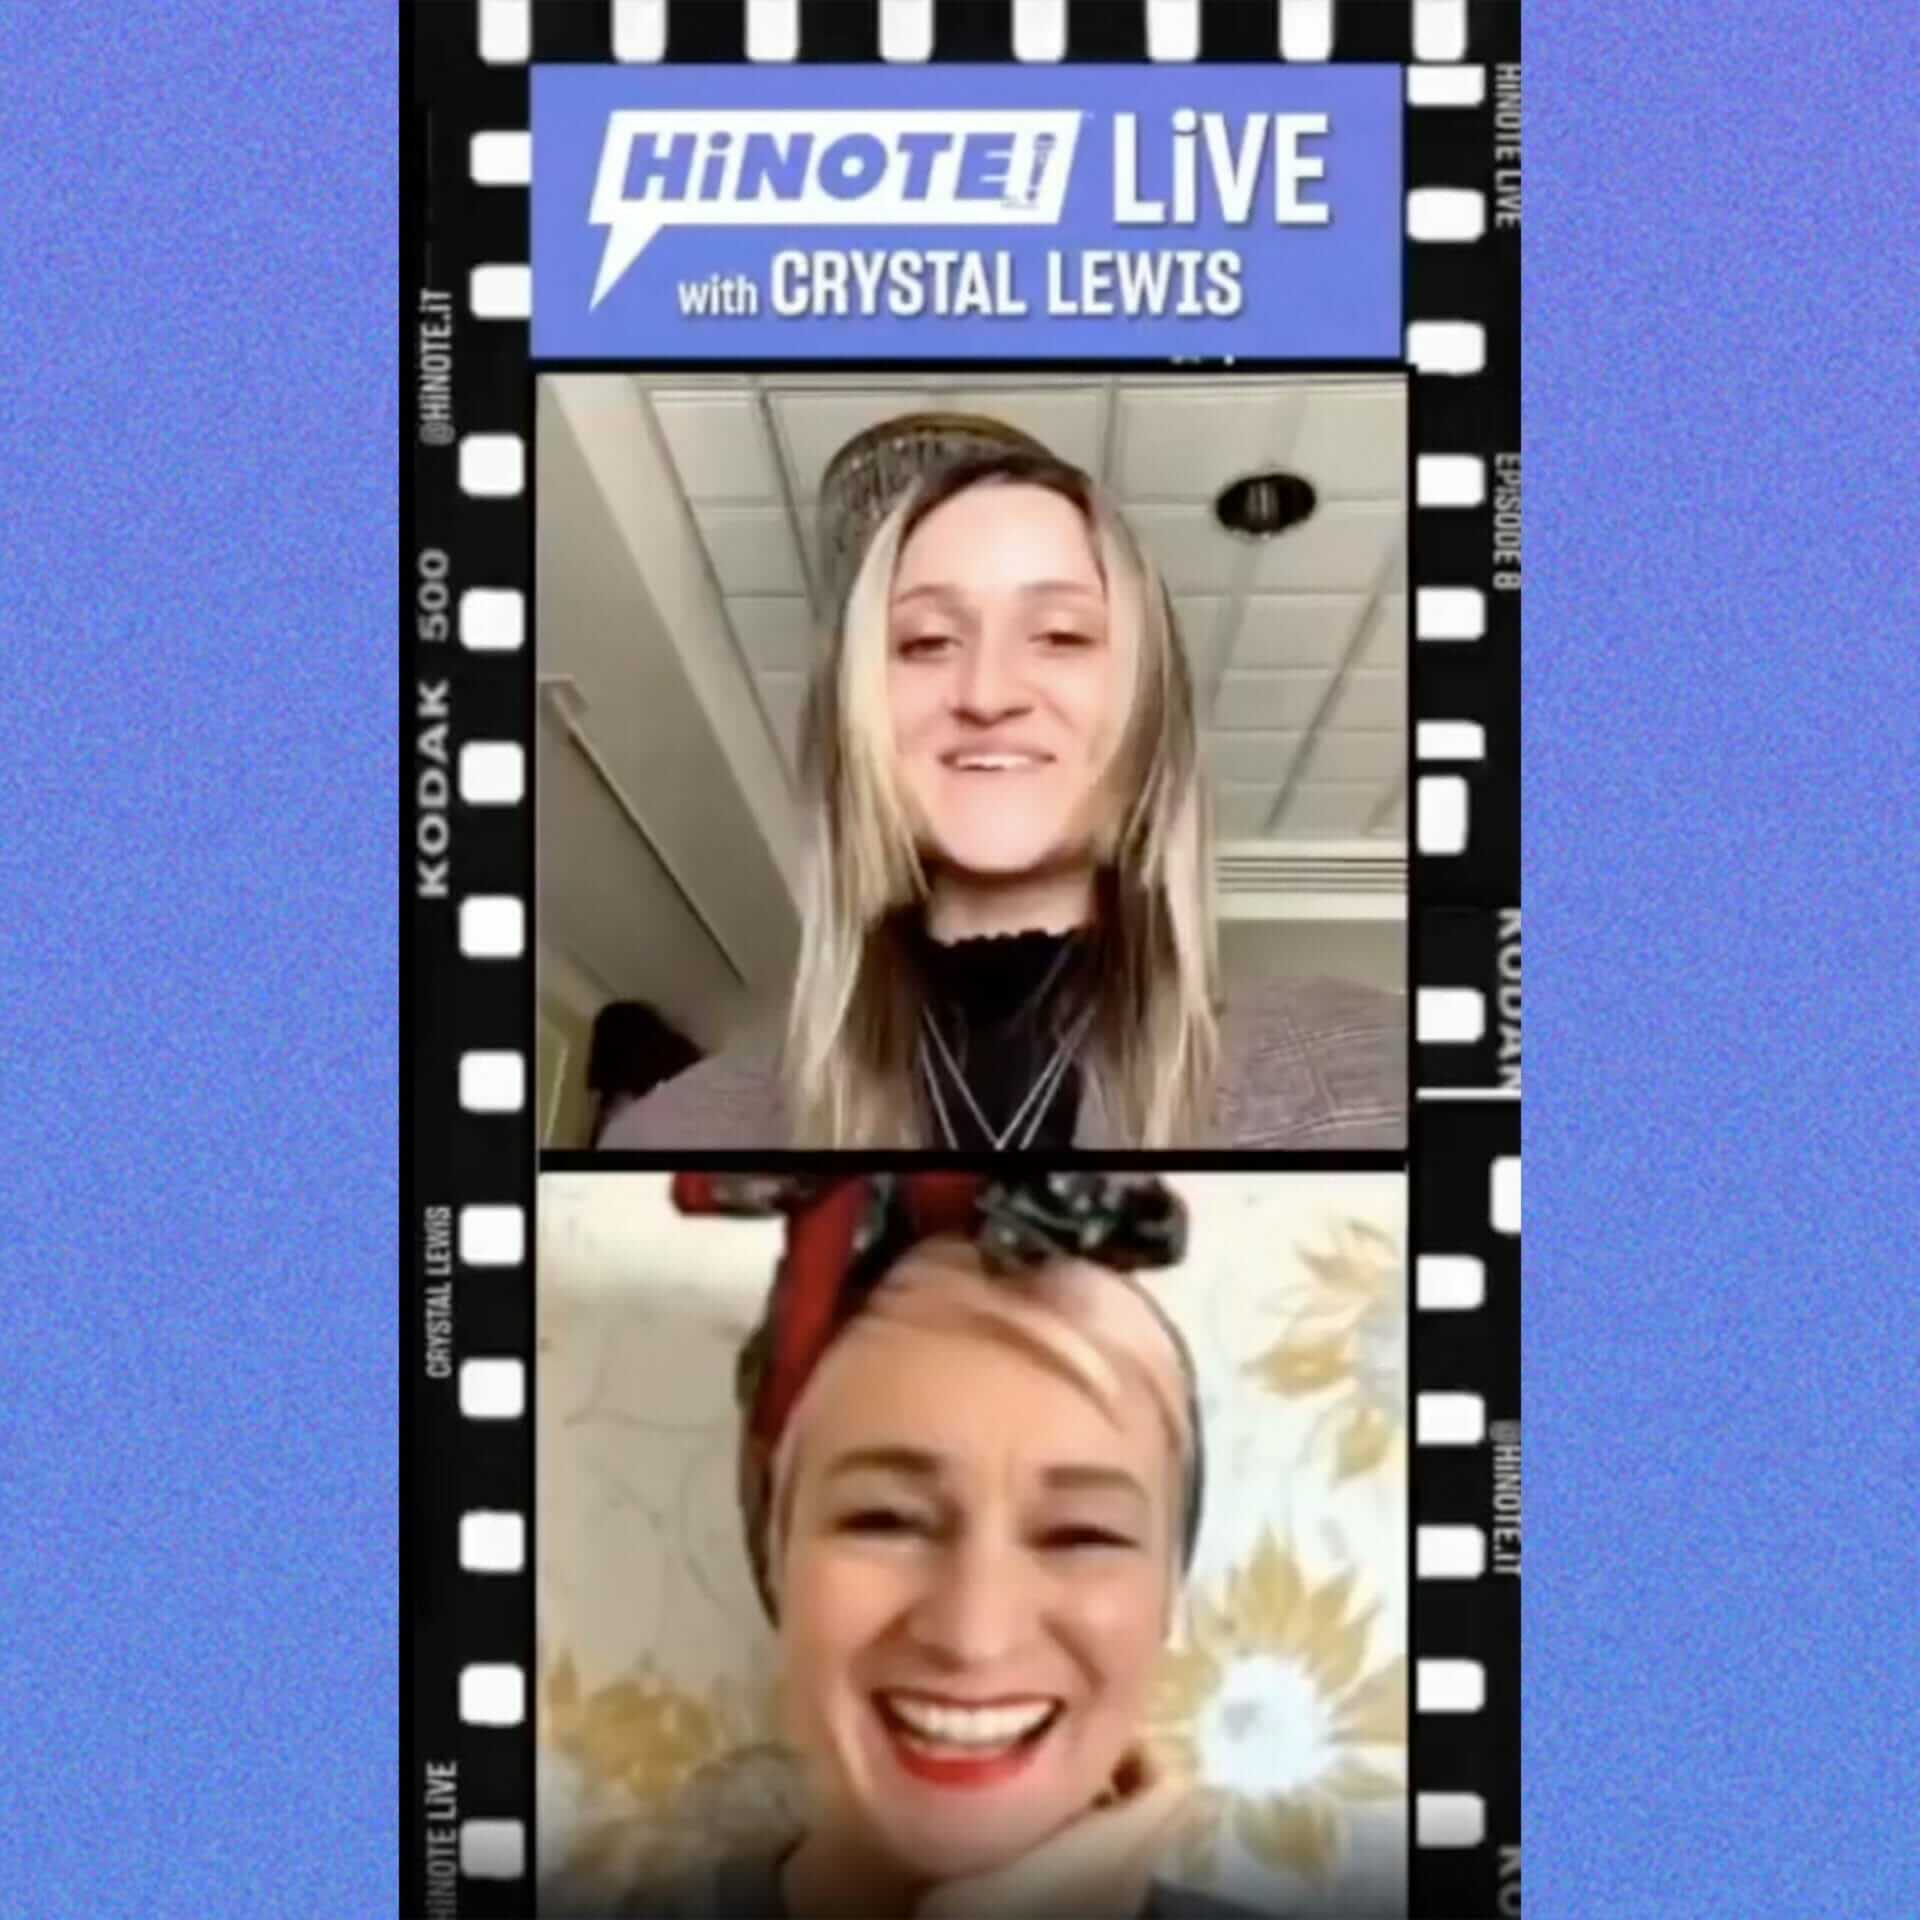 HiNOTE LiVE #9 with Crystal Lewis